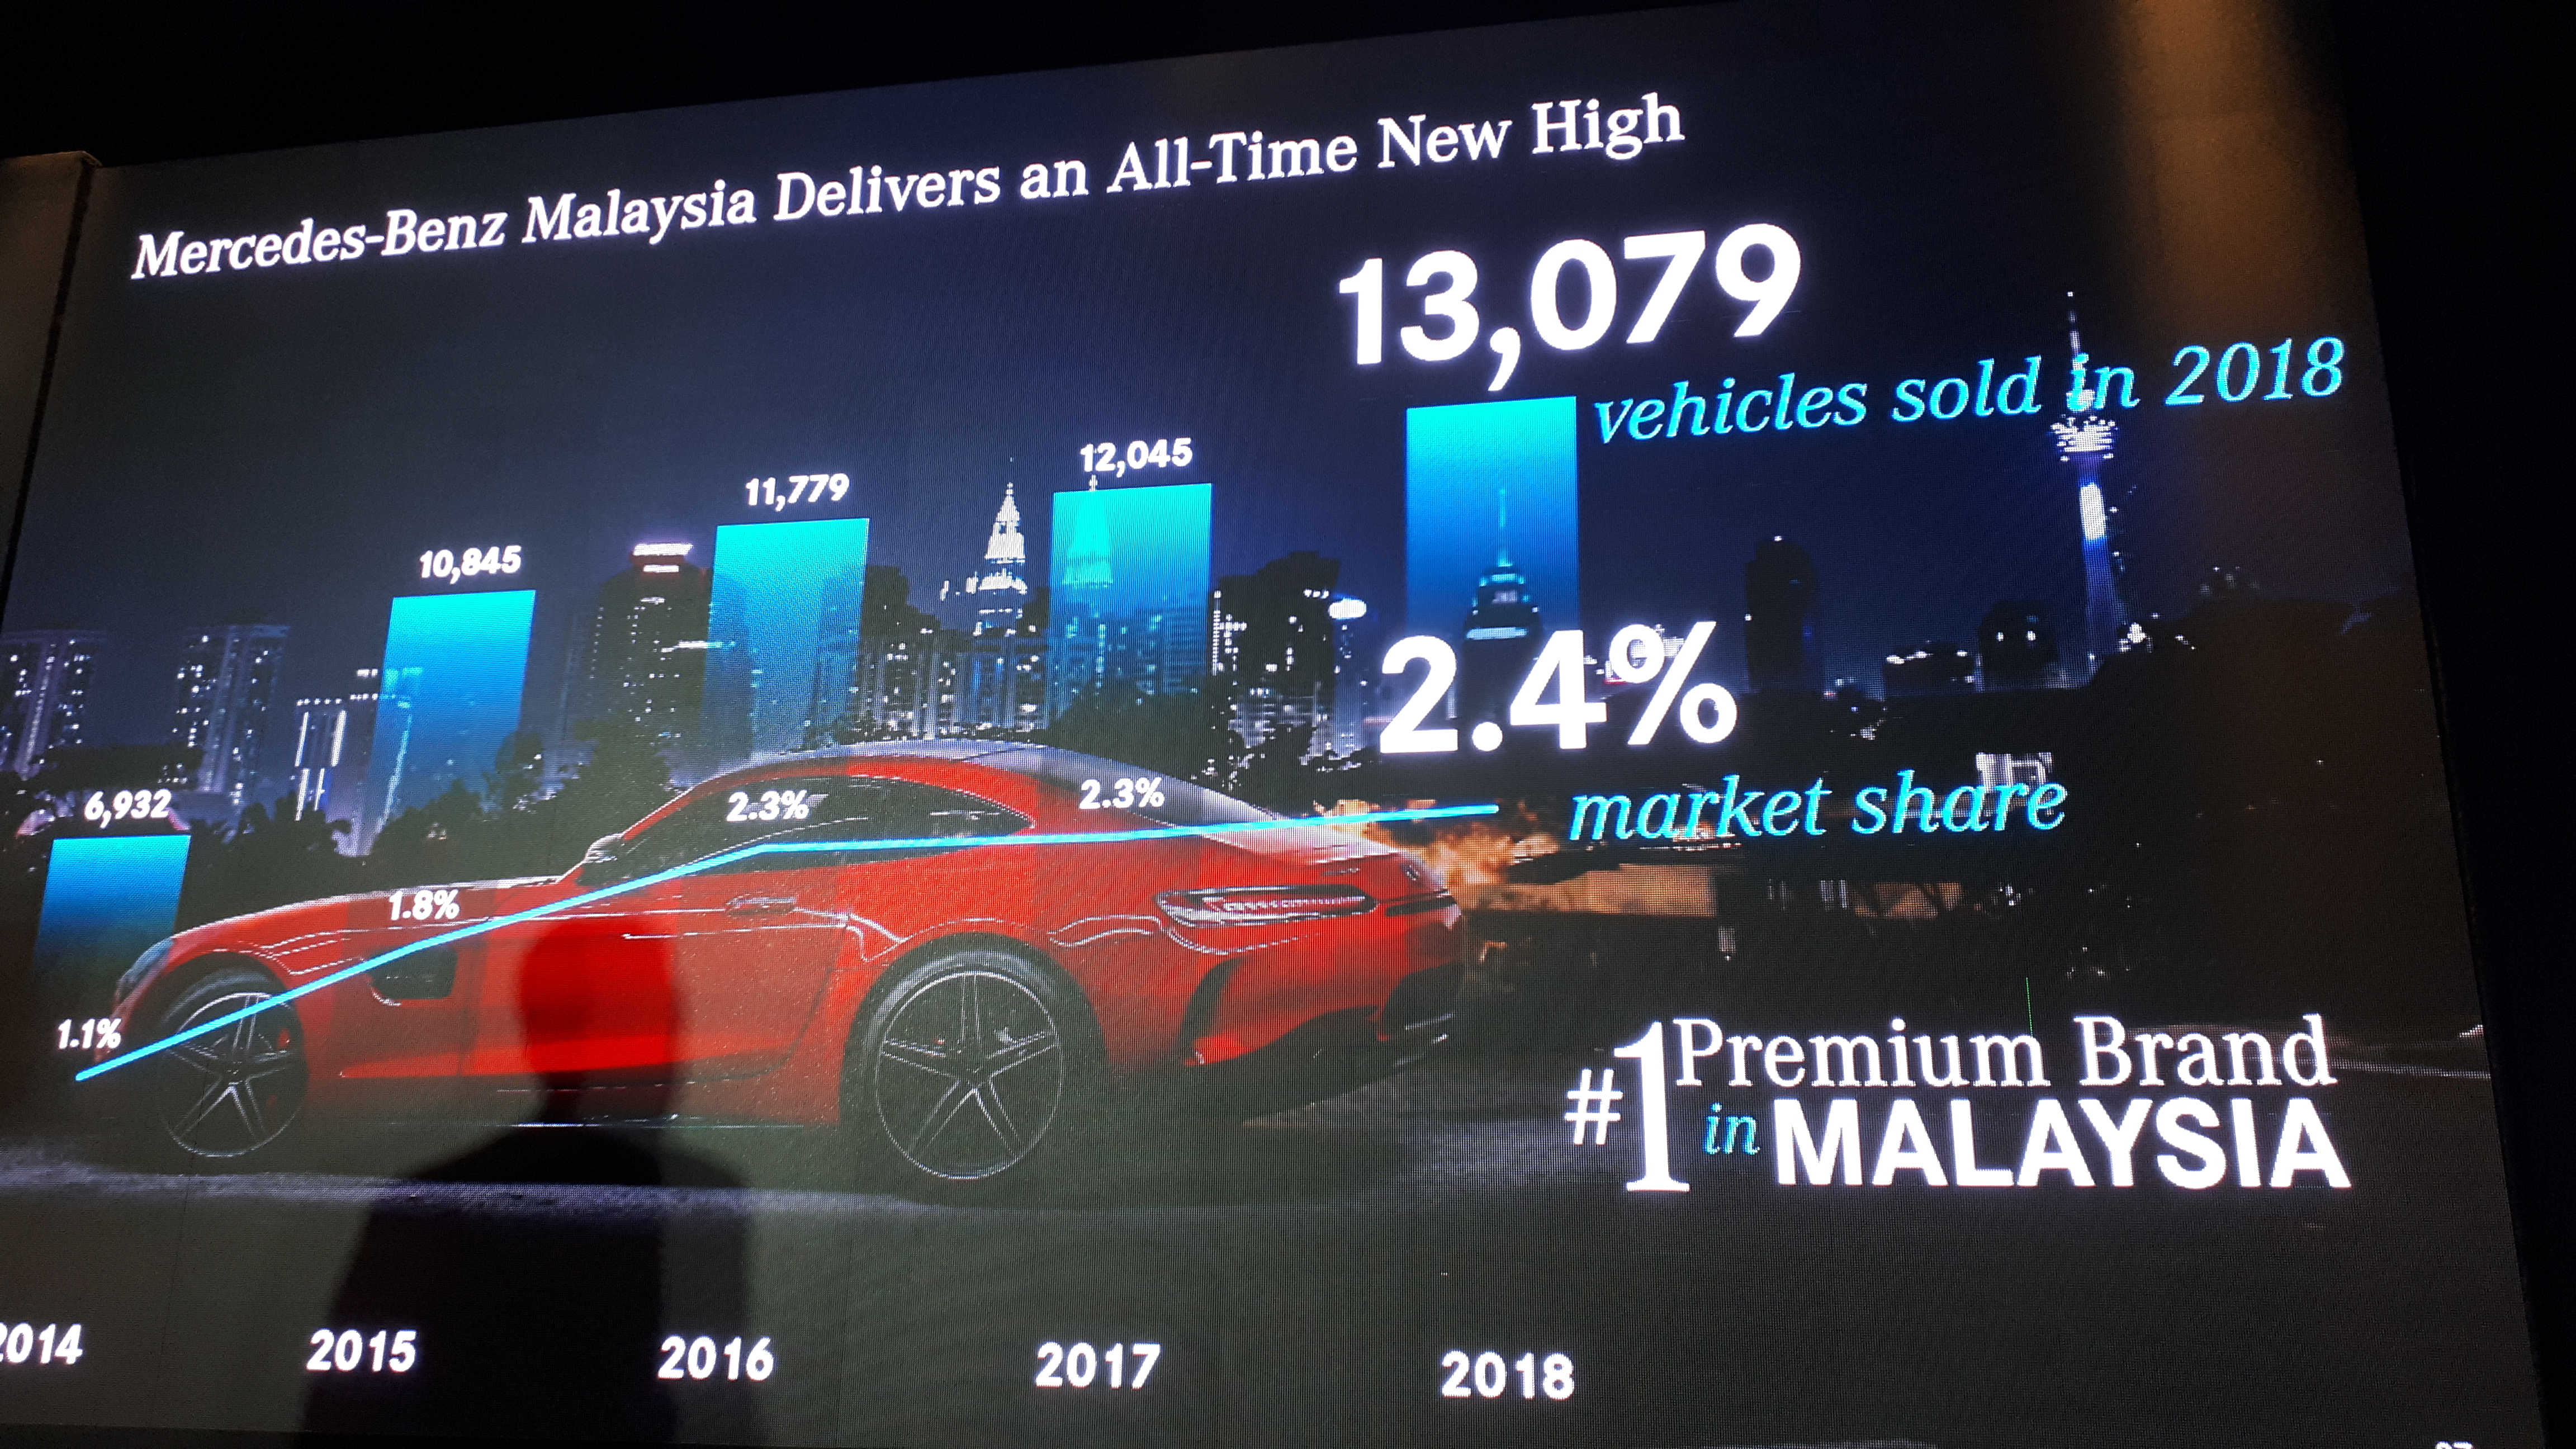 683accb144 Mercedes-Benz Malaysia Has Another Incredible Year In 2018 - Piston.my